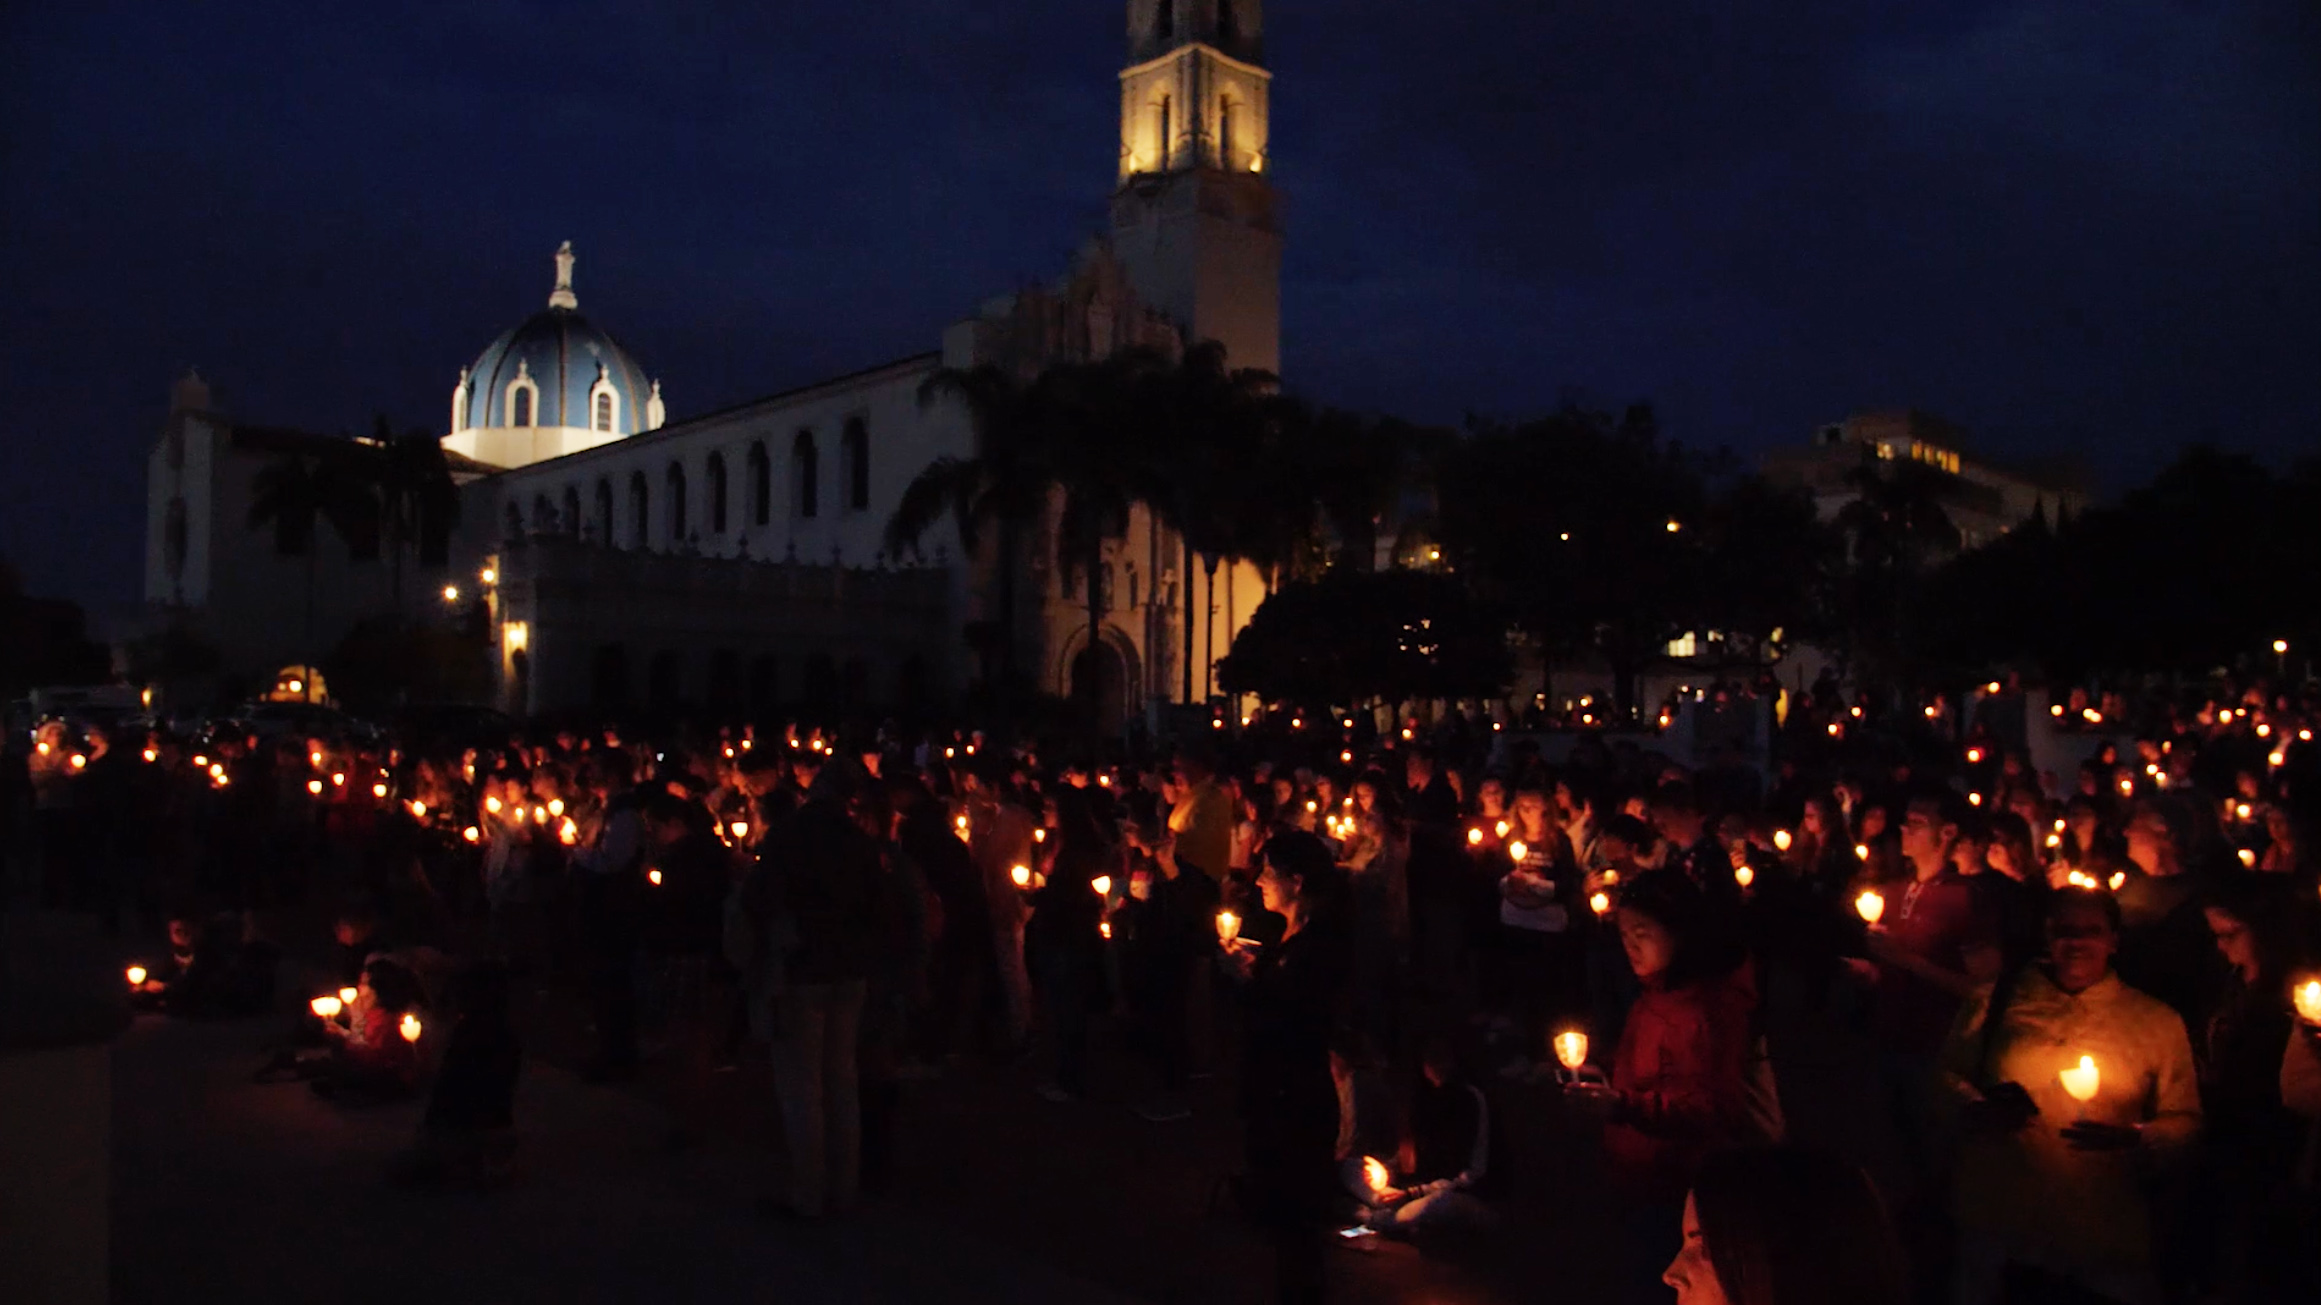 The Immaculata at night with students holding candles.